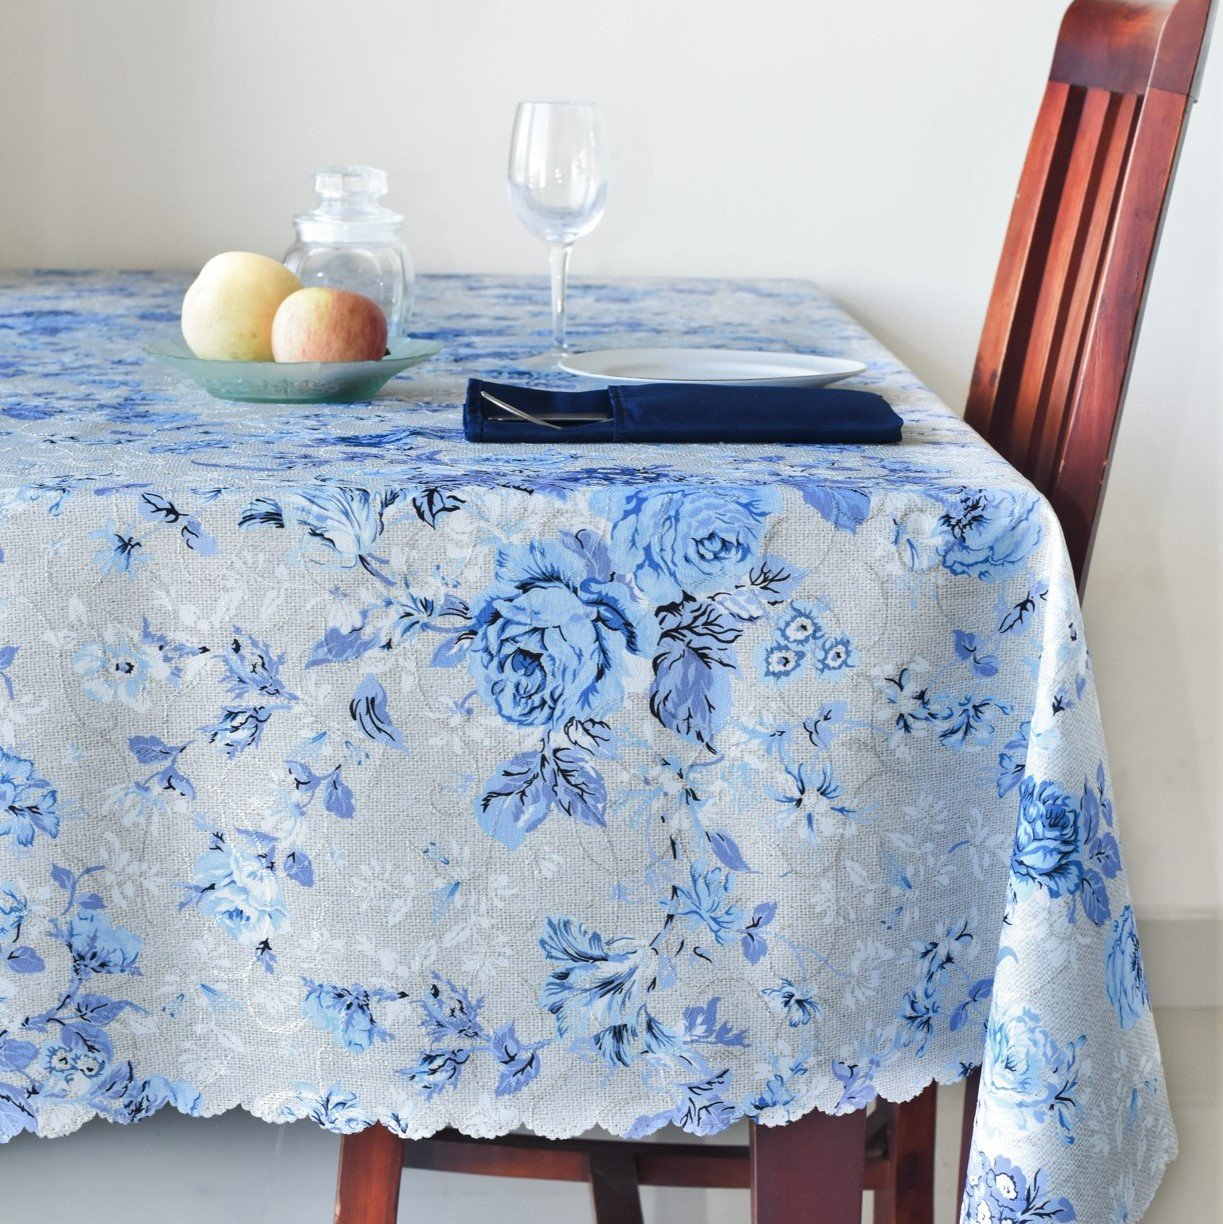 AHOLTA DESIGN Floral Rectangle Tablecloth Stain Resistant- Table Cover for Kitchen Dining Room Restaurants Thanksgiving Christmas Dinner New Year (Blue Flowers, Rectangle 60''x120'')